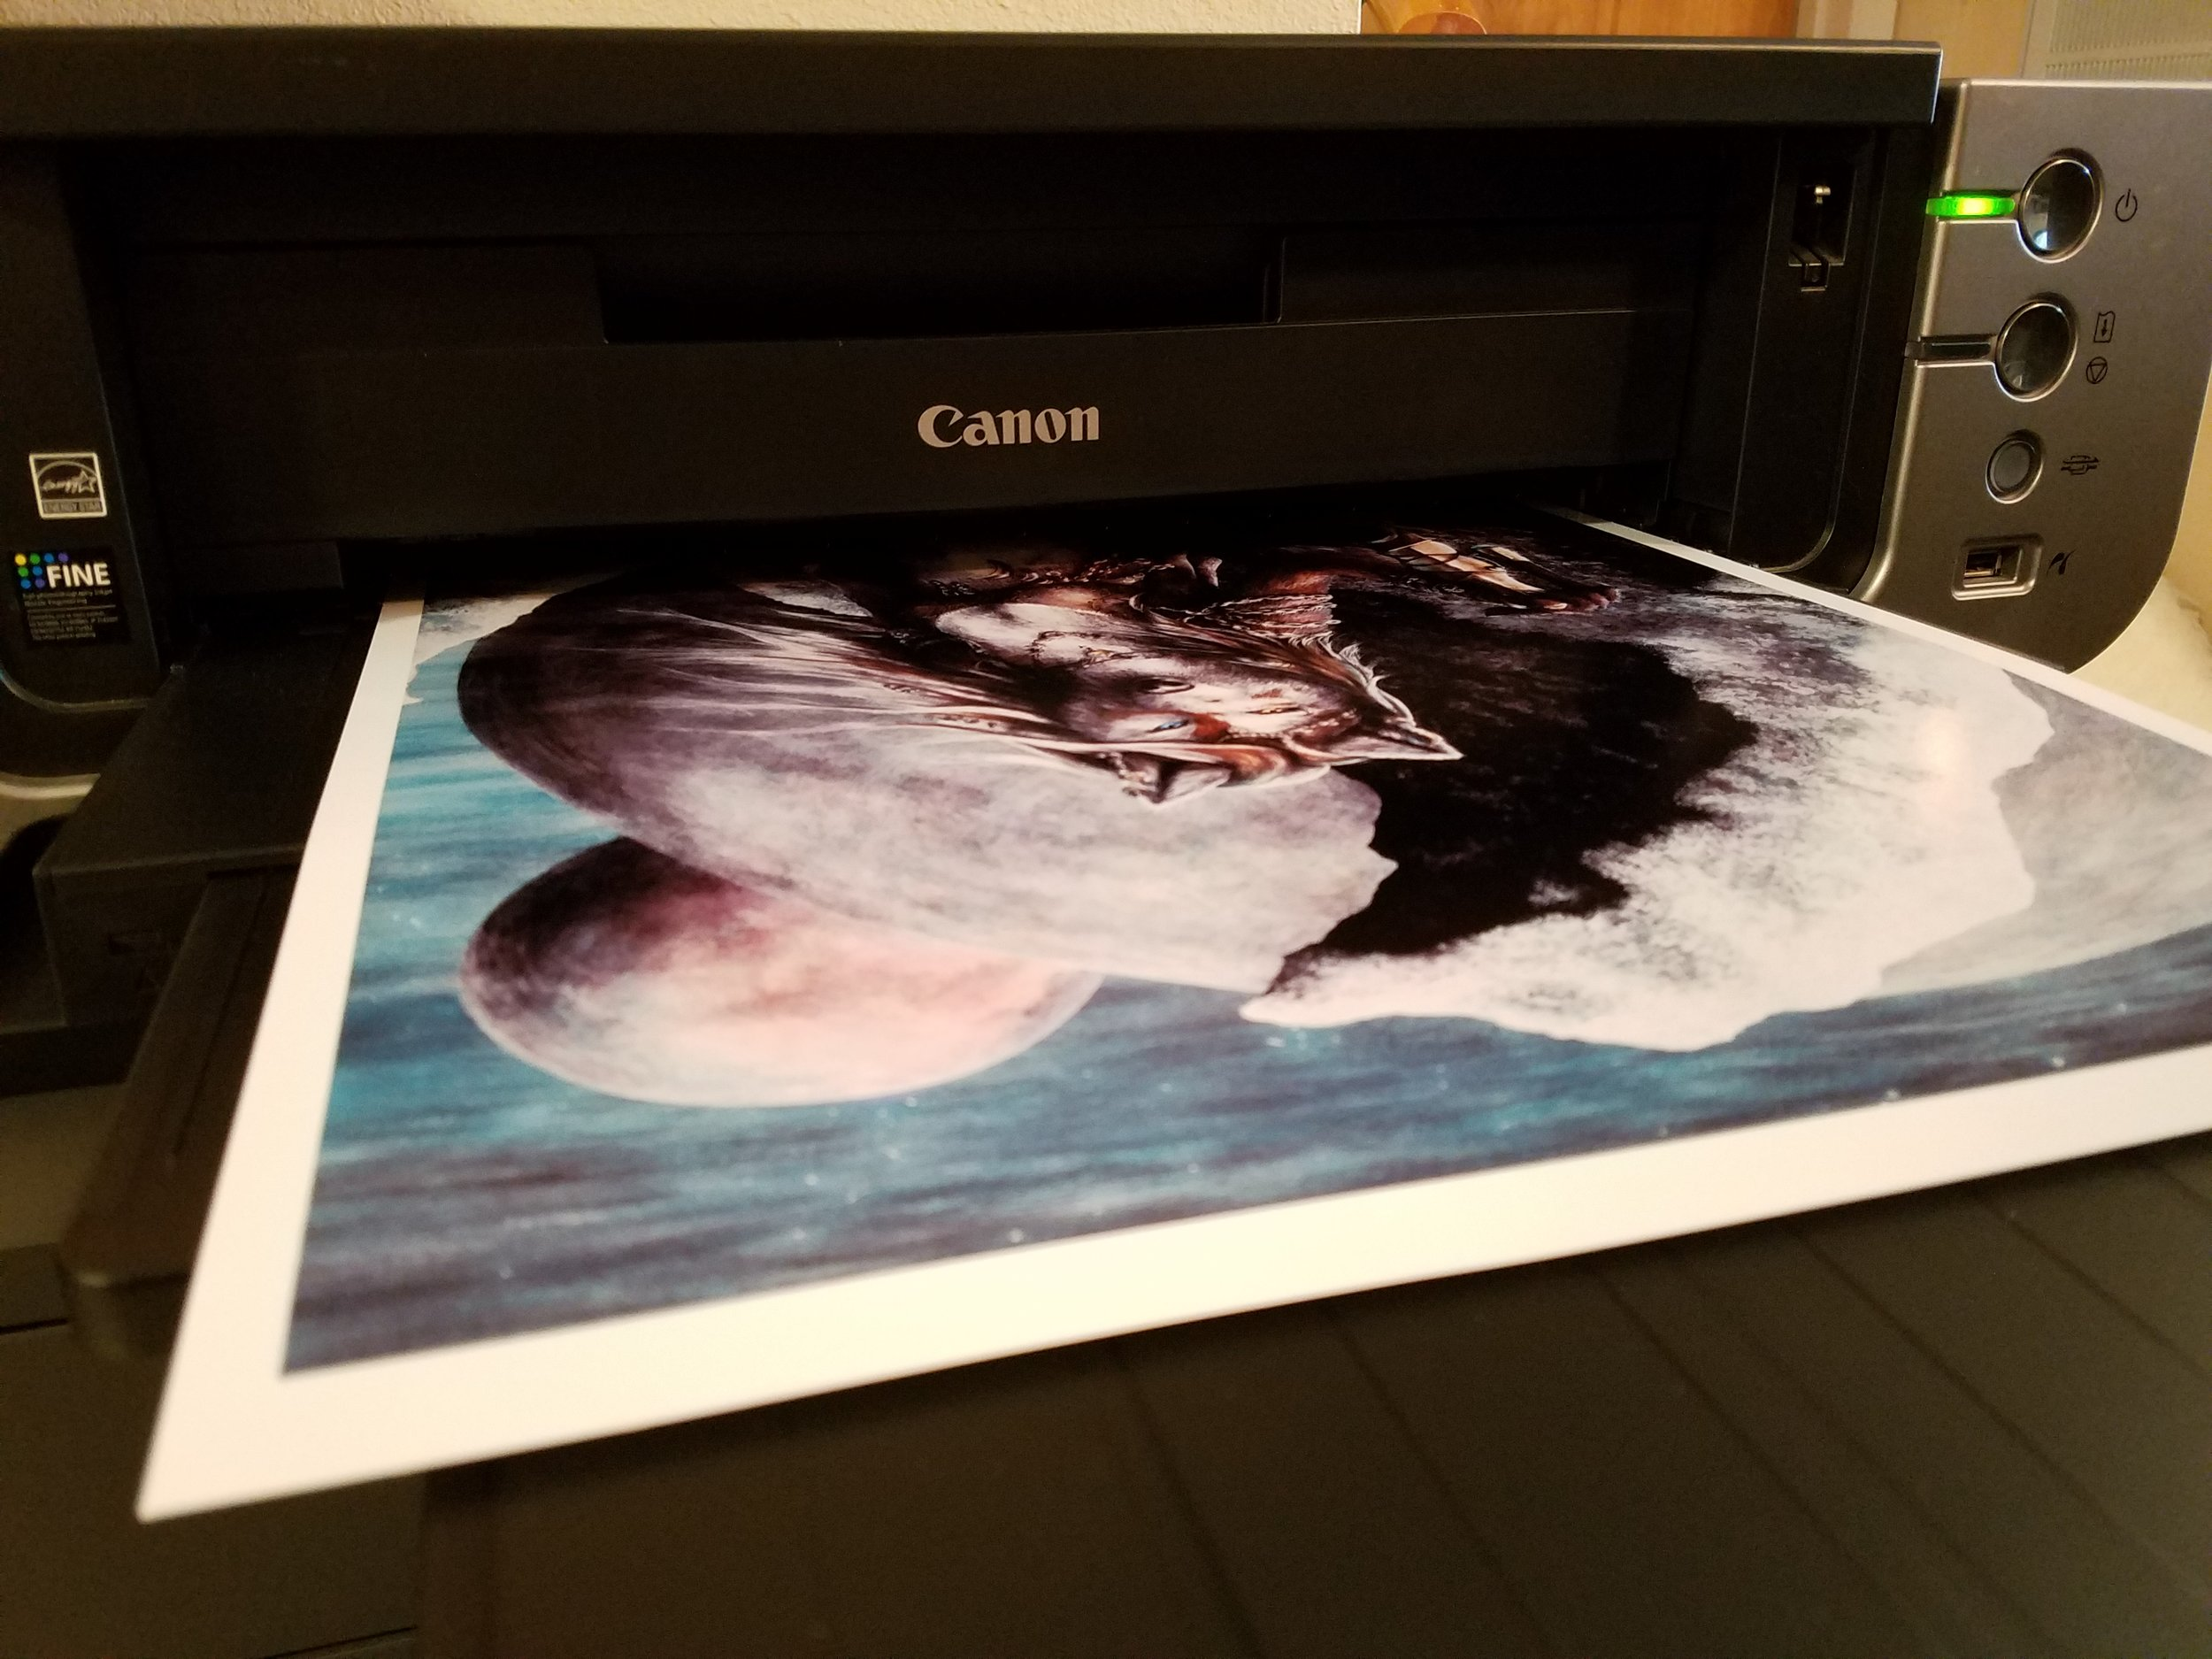 Prints are forged with a Canon PIXMA Pro9000 and several types of premium inkjet paper.